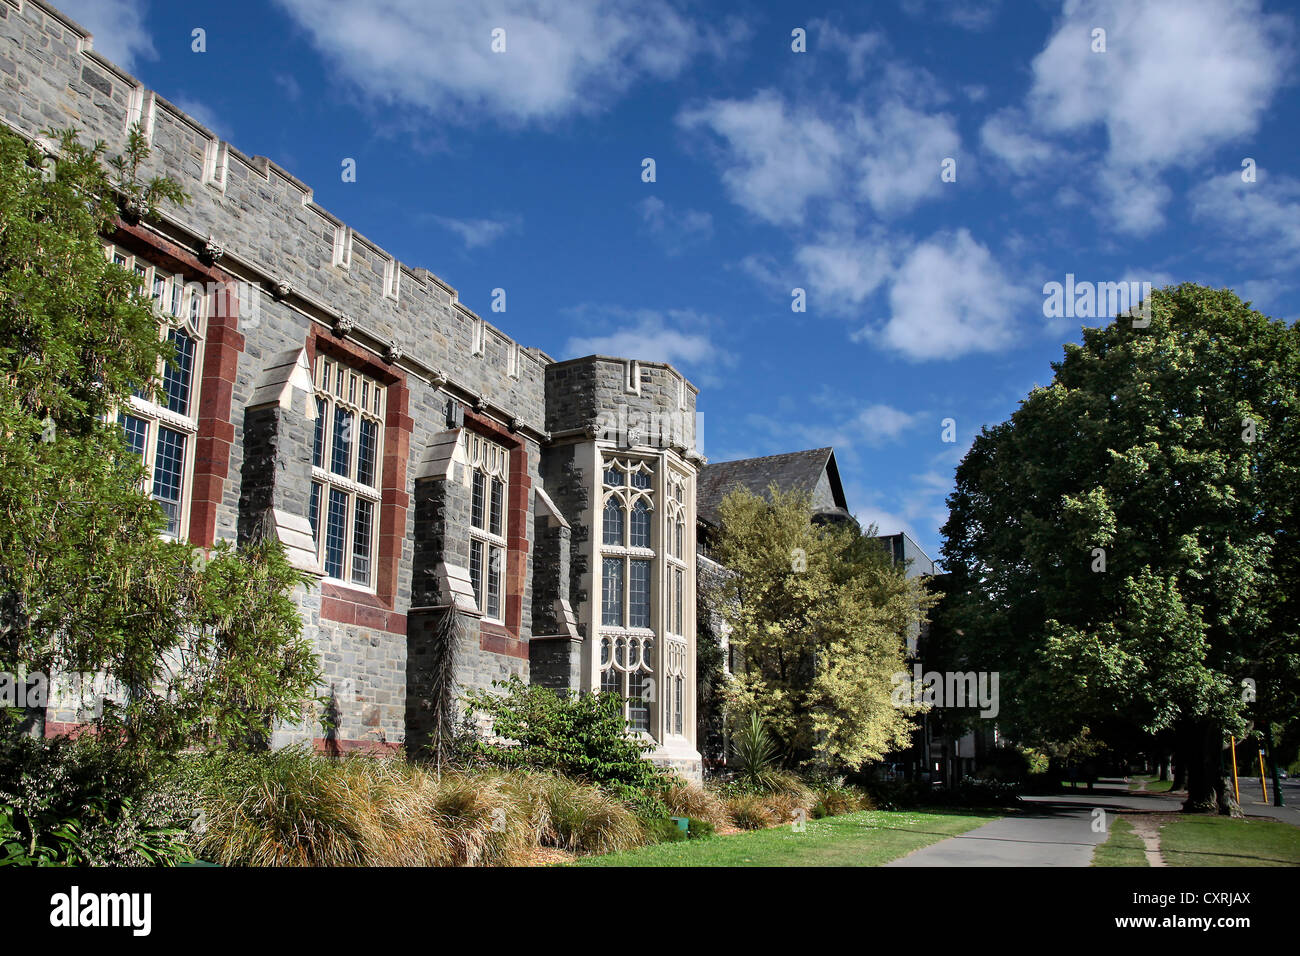 Christs College in Christchurch, Canterbury, South Island, New Zealand - Stock Image